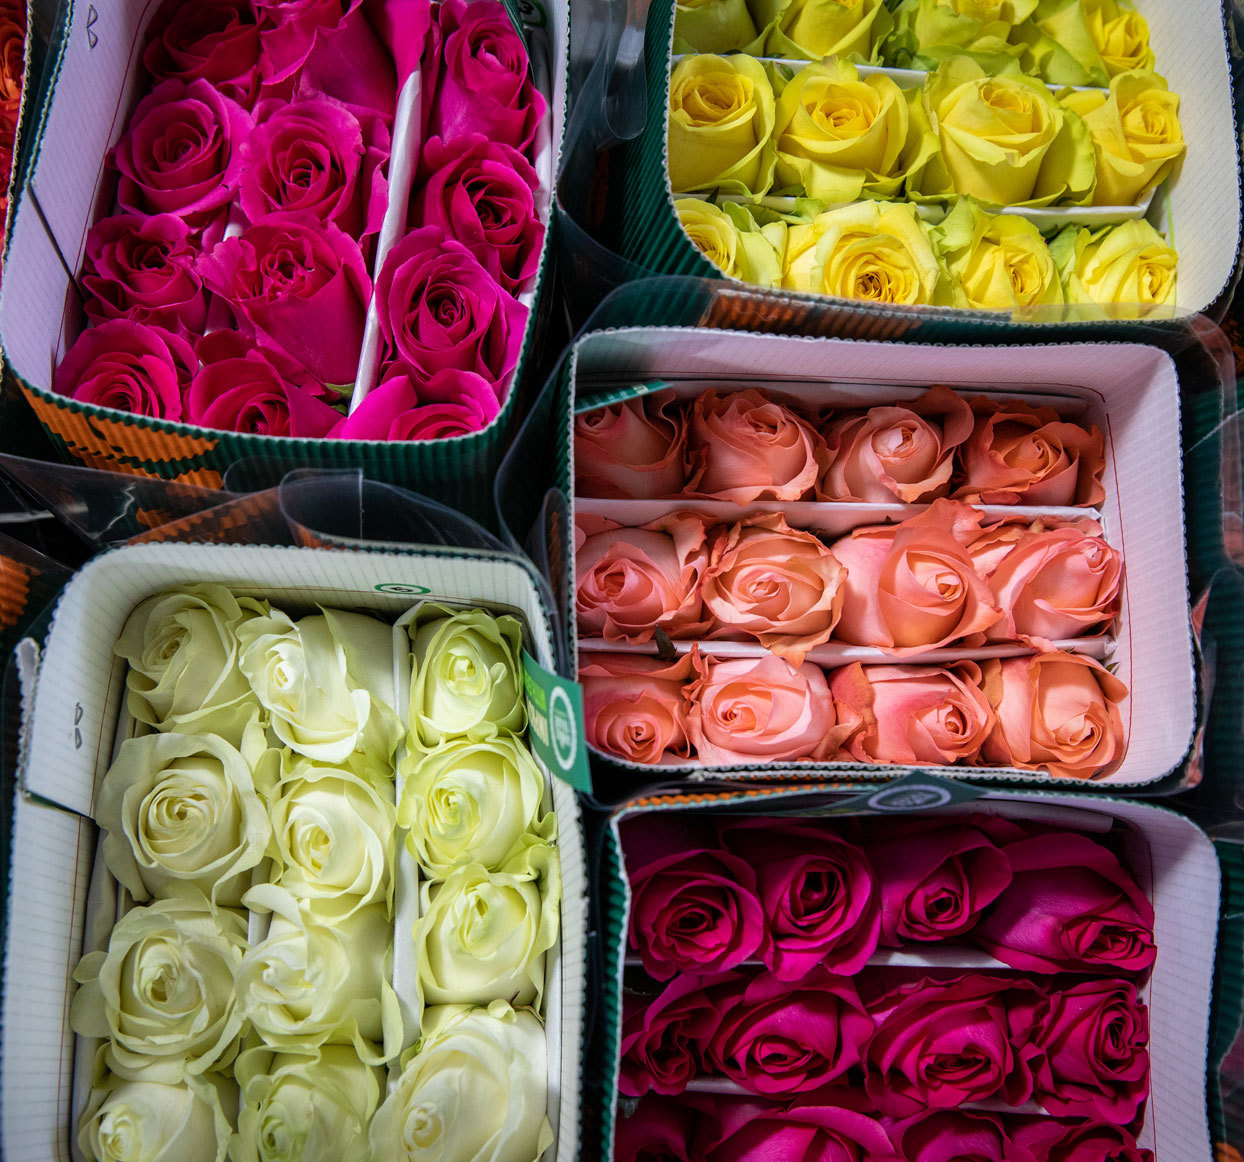 roses from whole foods